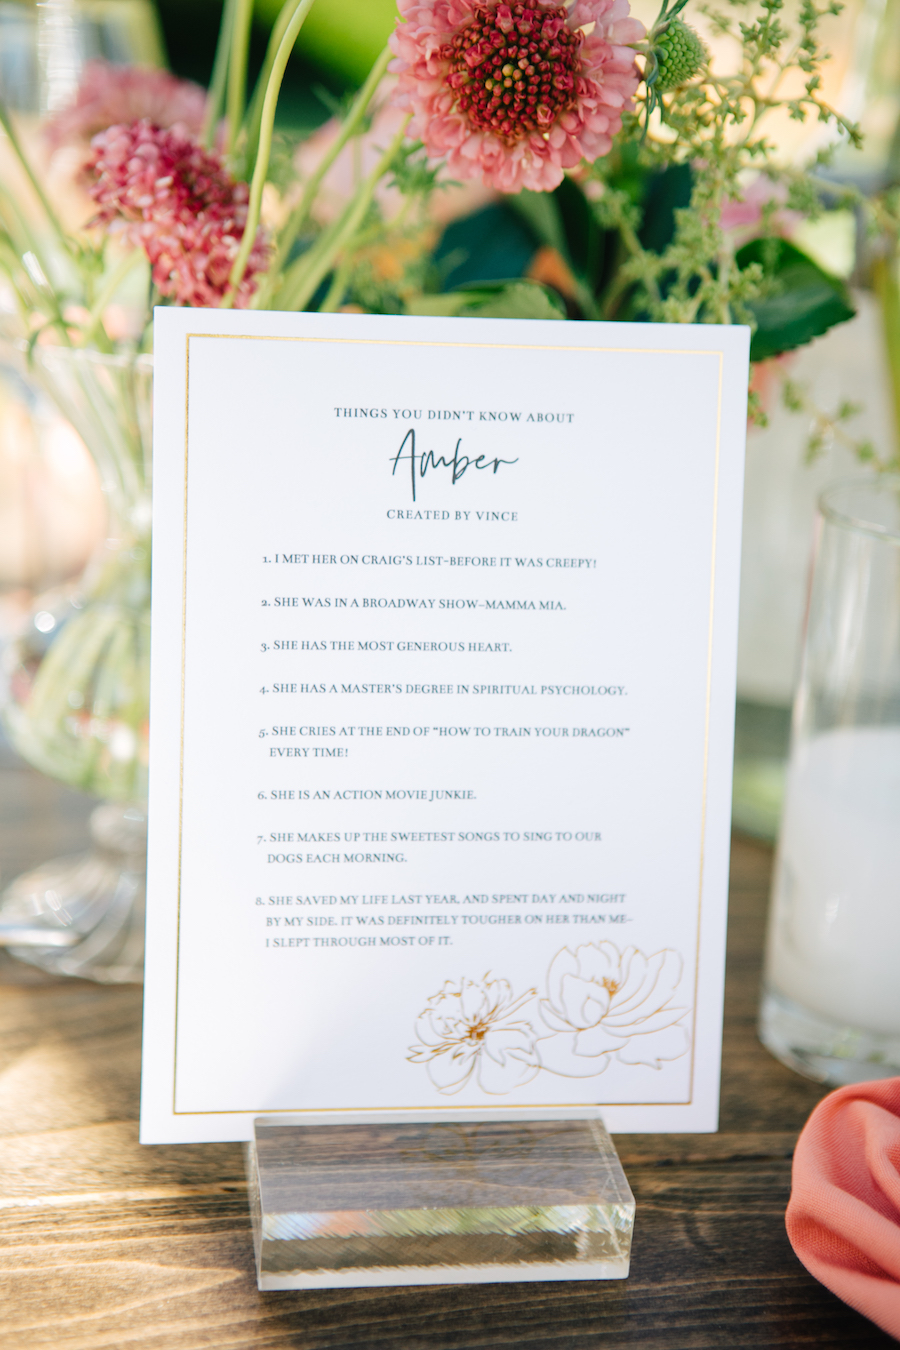 ROQUE Events - Amber and Vince - Courtney Lindberg Photography - Napa Valley Wedding36.JPG